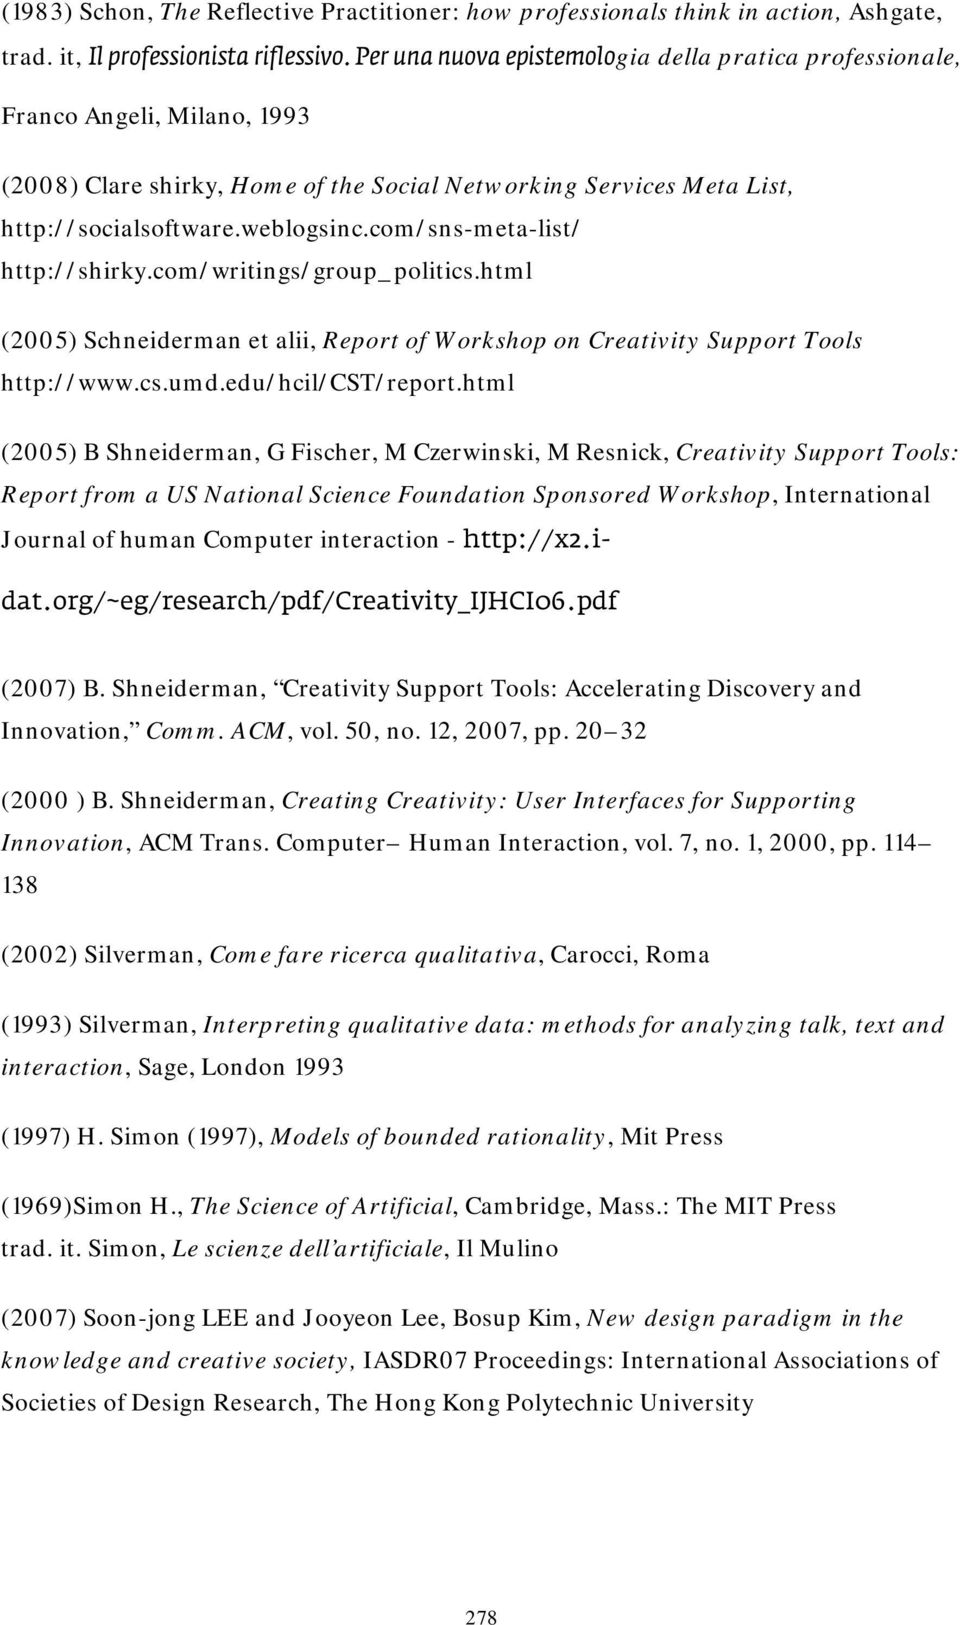 com/sns-meta-list/ http://shirky.com/writings/group_politics.html (2005) Schneiderman et alii, Report of Workshop on Creativity Support Tools http://www.cs.umd.edu/hcil/cst/report.